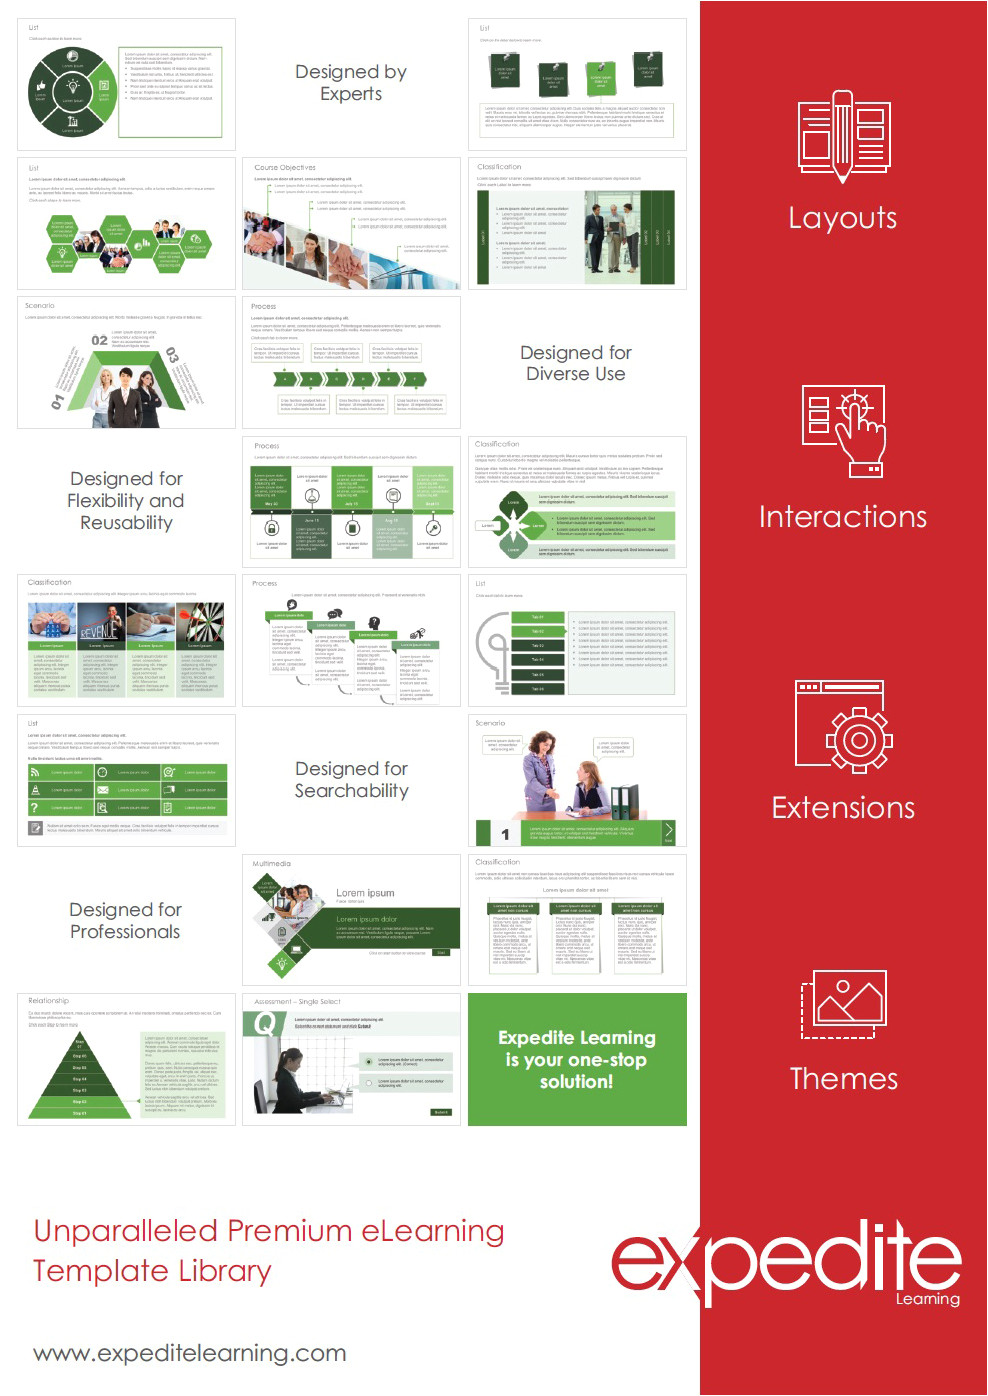 expedite learning articulate storyline based elearning template library